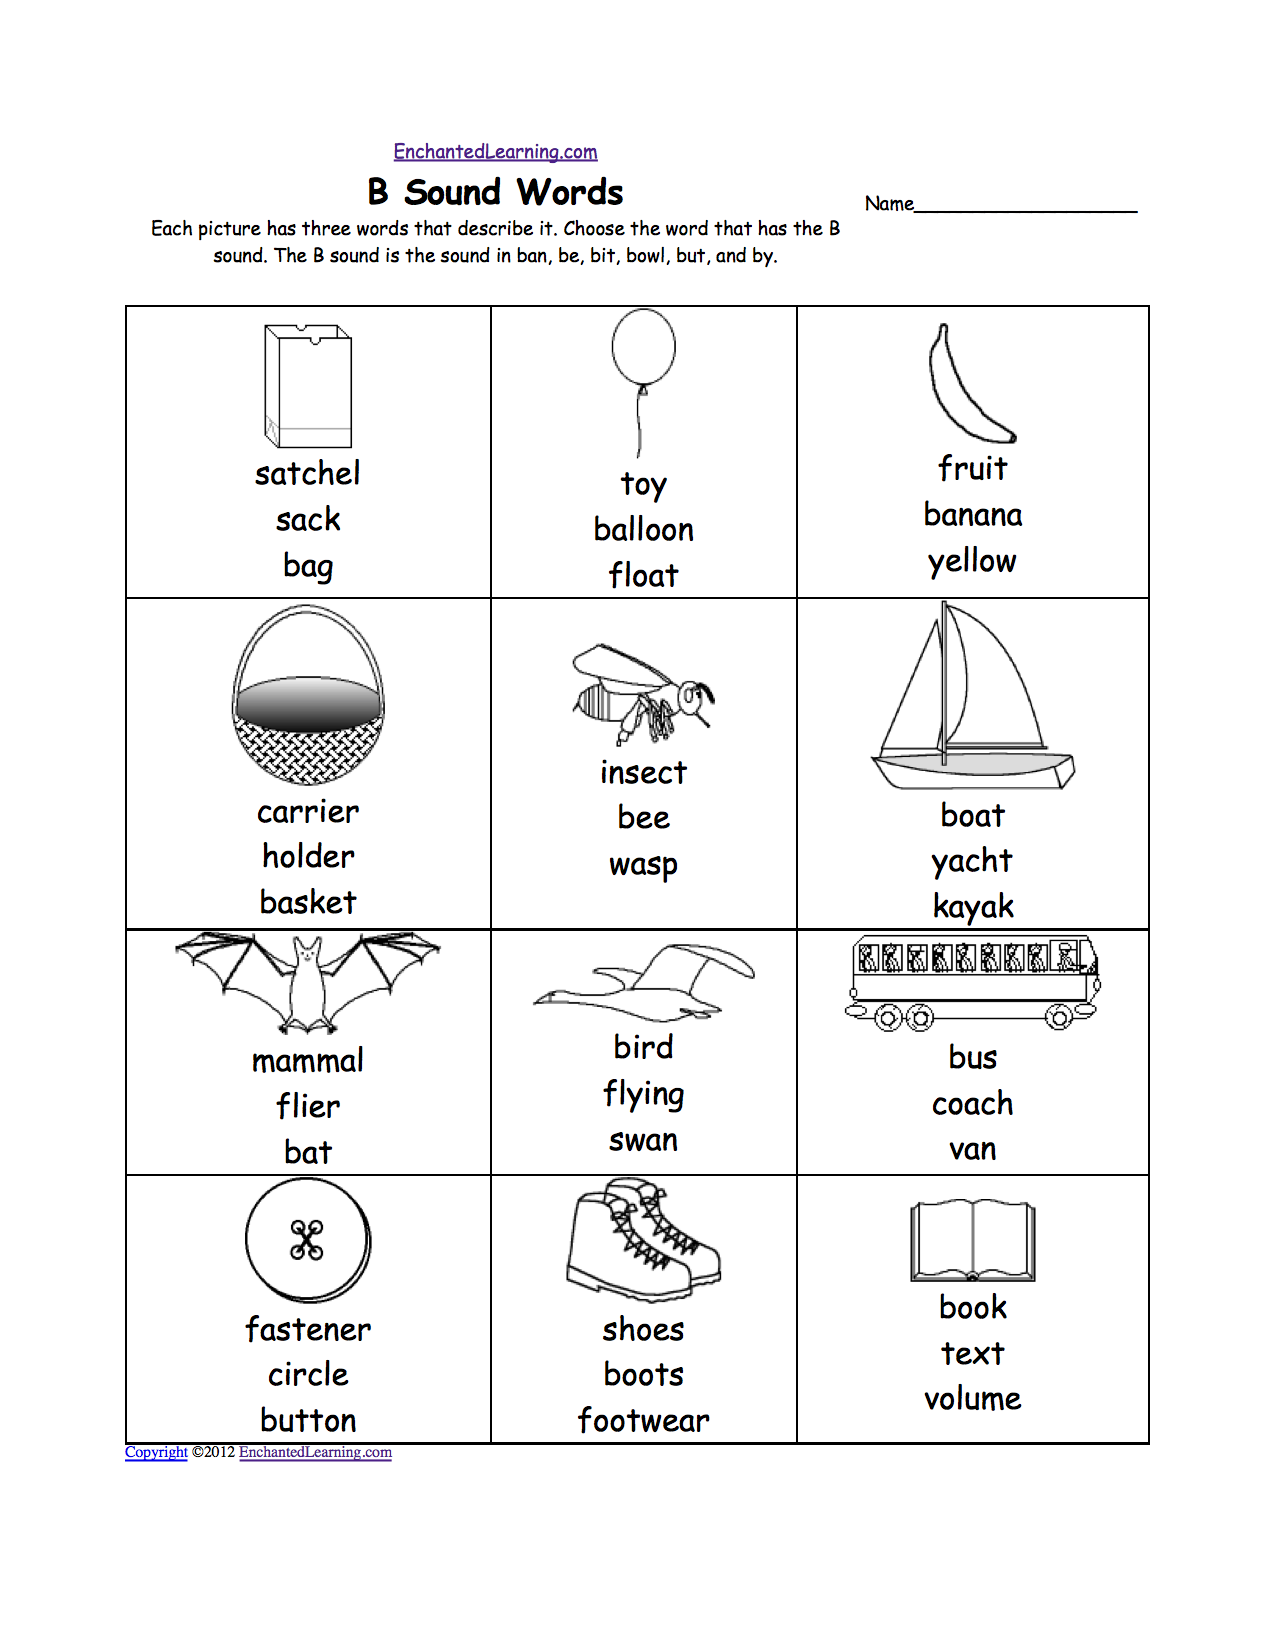 Weirdmailus  Personable Phonics Worksheets Multiple Choice Worksheets To Print  With Glamorous Quotbquot Sound Phonics Worksheet Multiple Choice Each Picture Has Three Words That Describe It Choose The Word That Has A Quotbquot Sound The Quotbquot Sound Is The Sound  With Cool Electronic Configuration Worksheets Also English Phonics Worksheets In Addition Perimeter Irregular Shapes Worksheets And Grade Four Math Worksheets As Well As Weight Conversion Worksheets Additionally Balance Chemical Equations Worksheets From Enchantedlearningcom With Weirdmailus  Glamorous Phonics Worksheets Multiple Choice Worksheets To Print  With Cool Quotbquot Sound Phonics Worksheet Multiple Choice Each Picture Has Three Words That Describe It Choose The Word That Has A Quotbquot Sound The Quotbquot Sound Is The Sound  And Personable Electronic Configuration Worksheets Also English Phonics Worksheets In Addition Perimeter Irregular Shapes Worksheets From Enchantedlearningcom